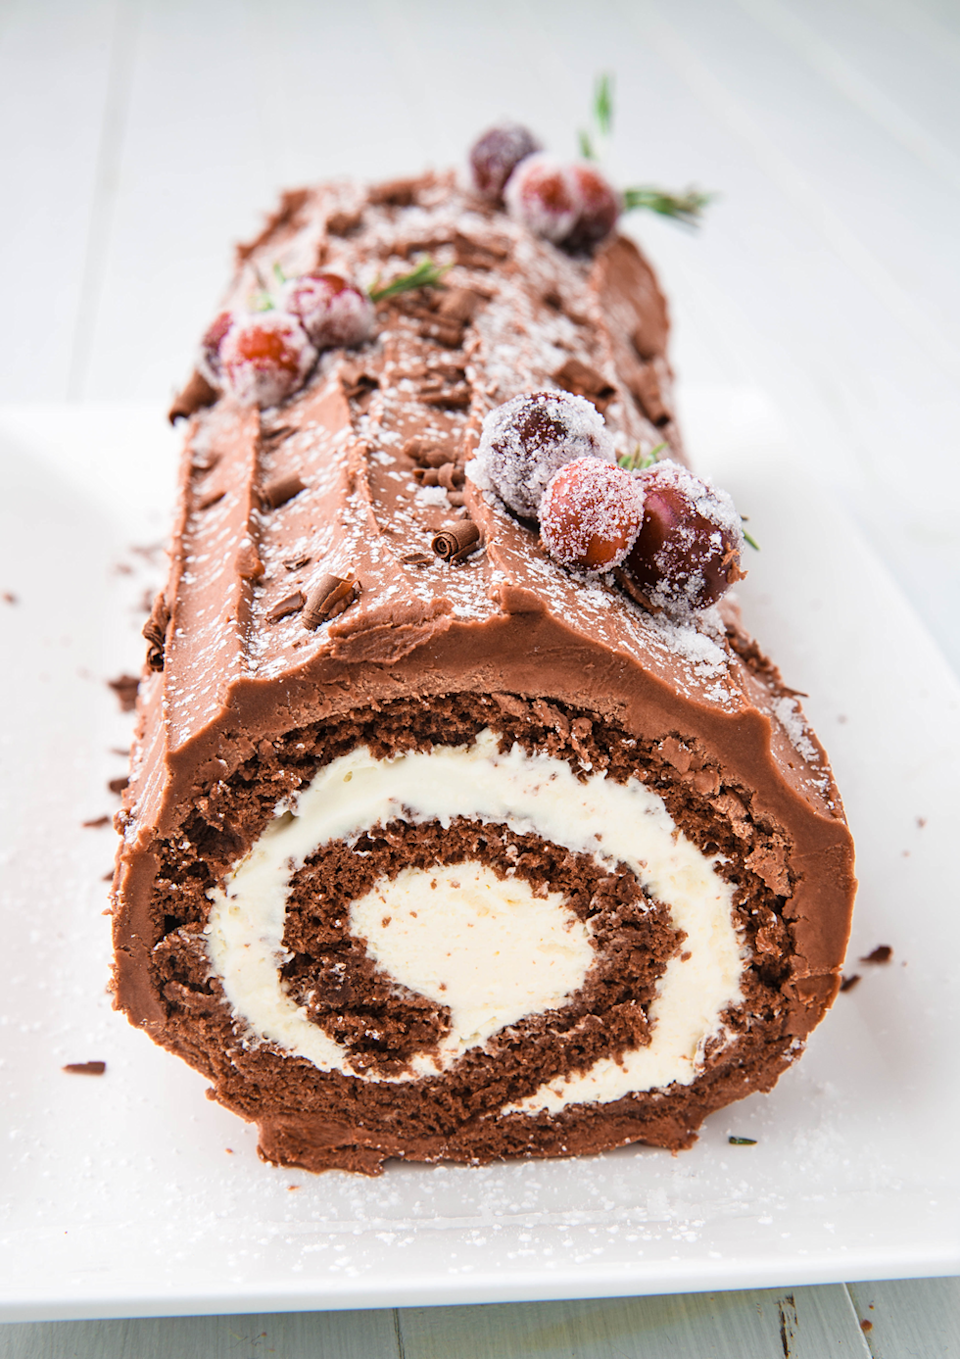 """<p>We'll let you in on a secret: This gorgeous classic is actually SO easy to make. </p><p>Get the recipe from <a href=""""https://www.delish.com/cooking/recipe-ideas/a24276998/buche-de-noel-yule-log-cake-recipe/"""" rel=""""nofollow noopener"""" target=""""_blank"""" data-ylk=""""slk:Delish"""" class=""""link rapid-noclick-resp"""">Delish</a>.</p>"""